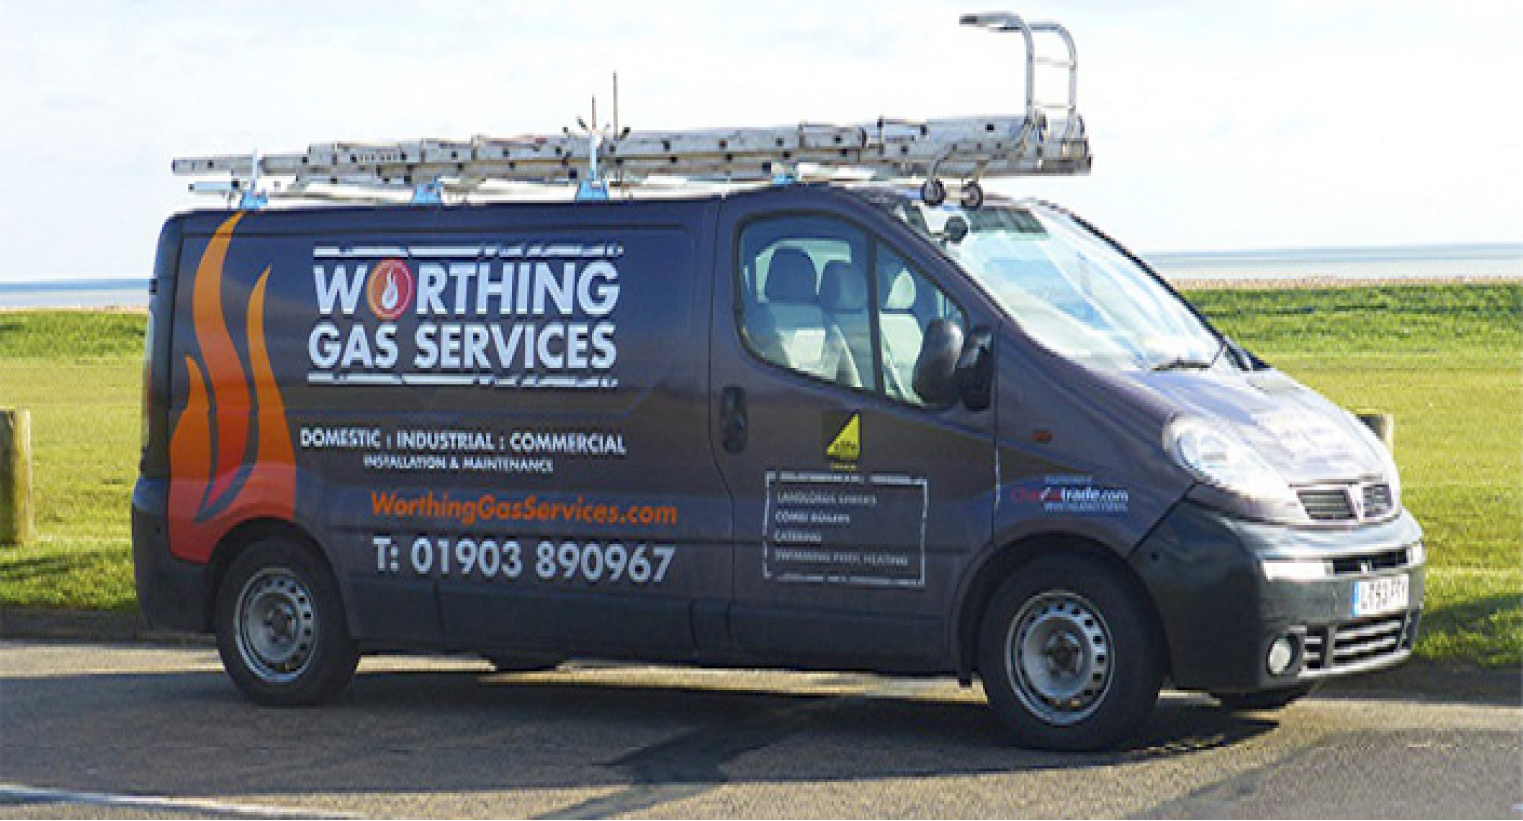 Central Heating - Central Heating - Worthing Gas Services Worthing